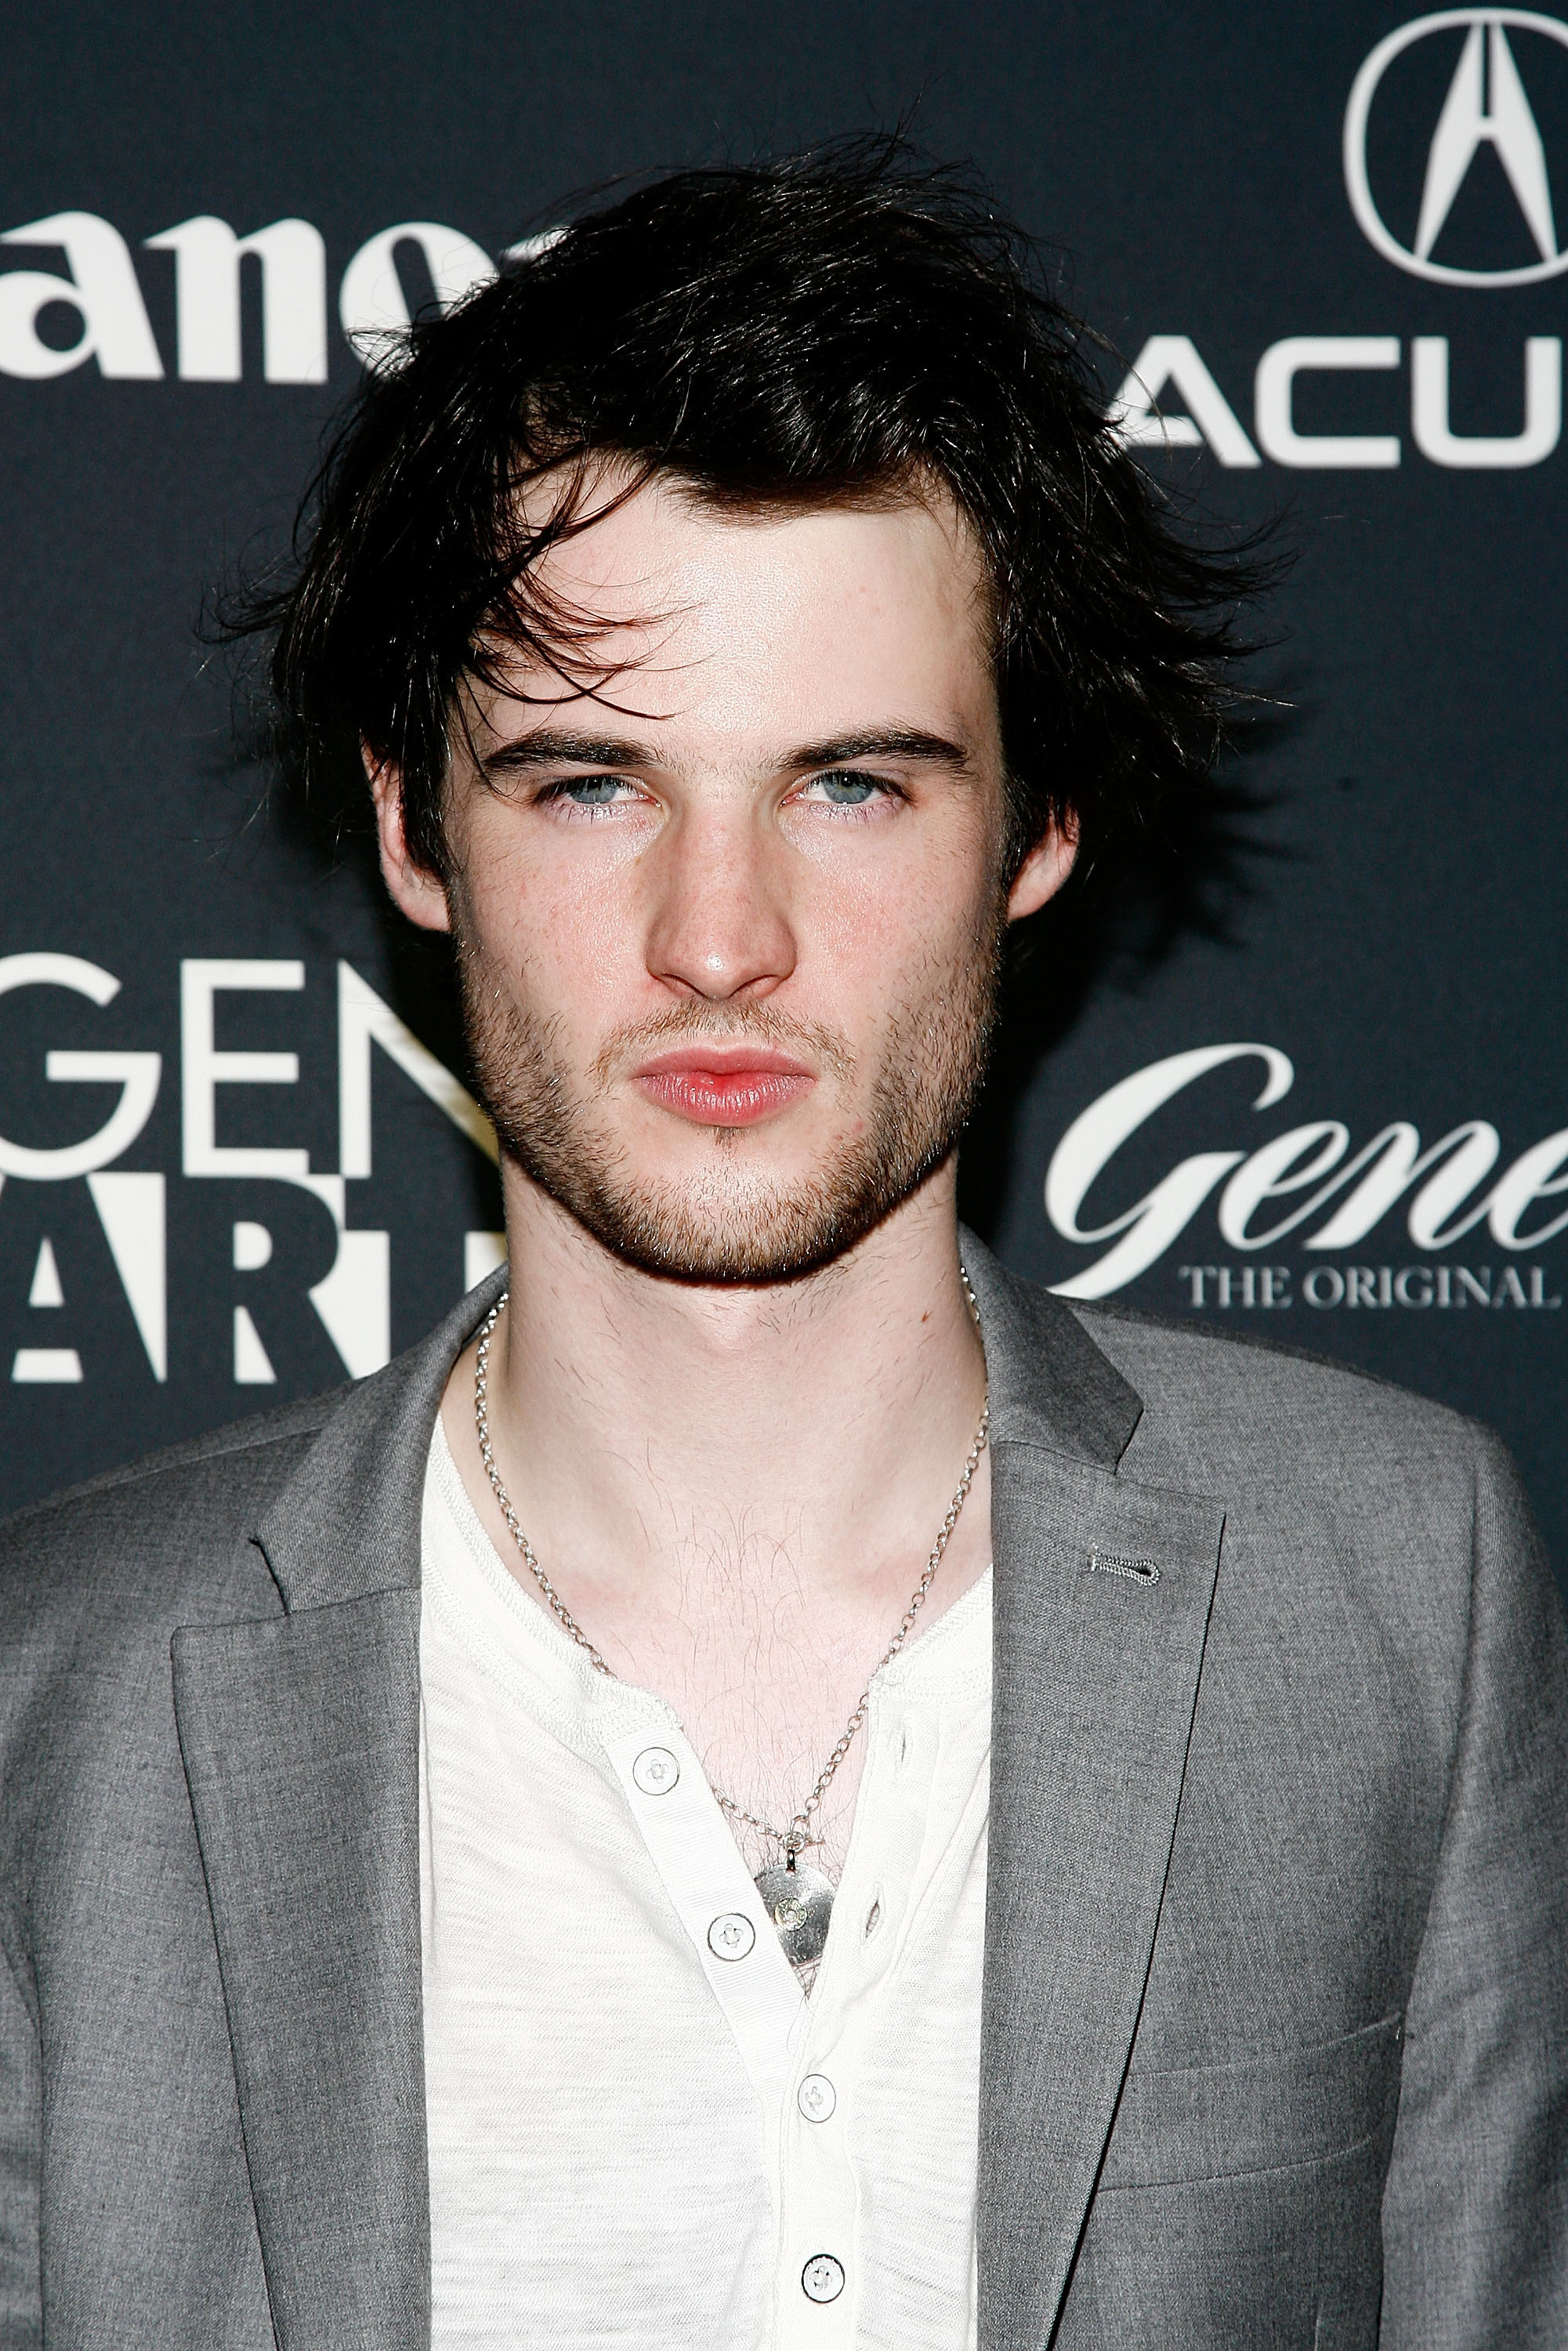 tom sturridge on the roadtom sturridge instagram, tom sturridge tumblr, tom sturridge like minds, tom sturridge 2014, tom sturridge gif hunt, tom sturridge movies, tom sturridge interview, tom sturridge far from the madding crowd, tom sturridge robert pattinson, tom sturridge on the road, tom sturridge henry vi, tom sturridge sienna miller, tom sturridge gif, tom sturridge vk, tom sturridge daughter, tom sturridge twitter